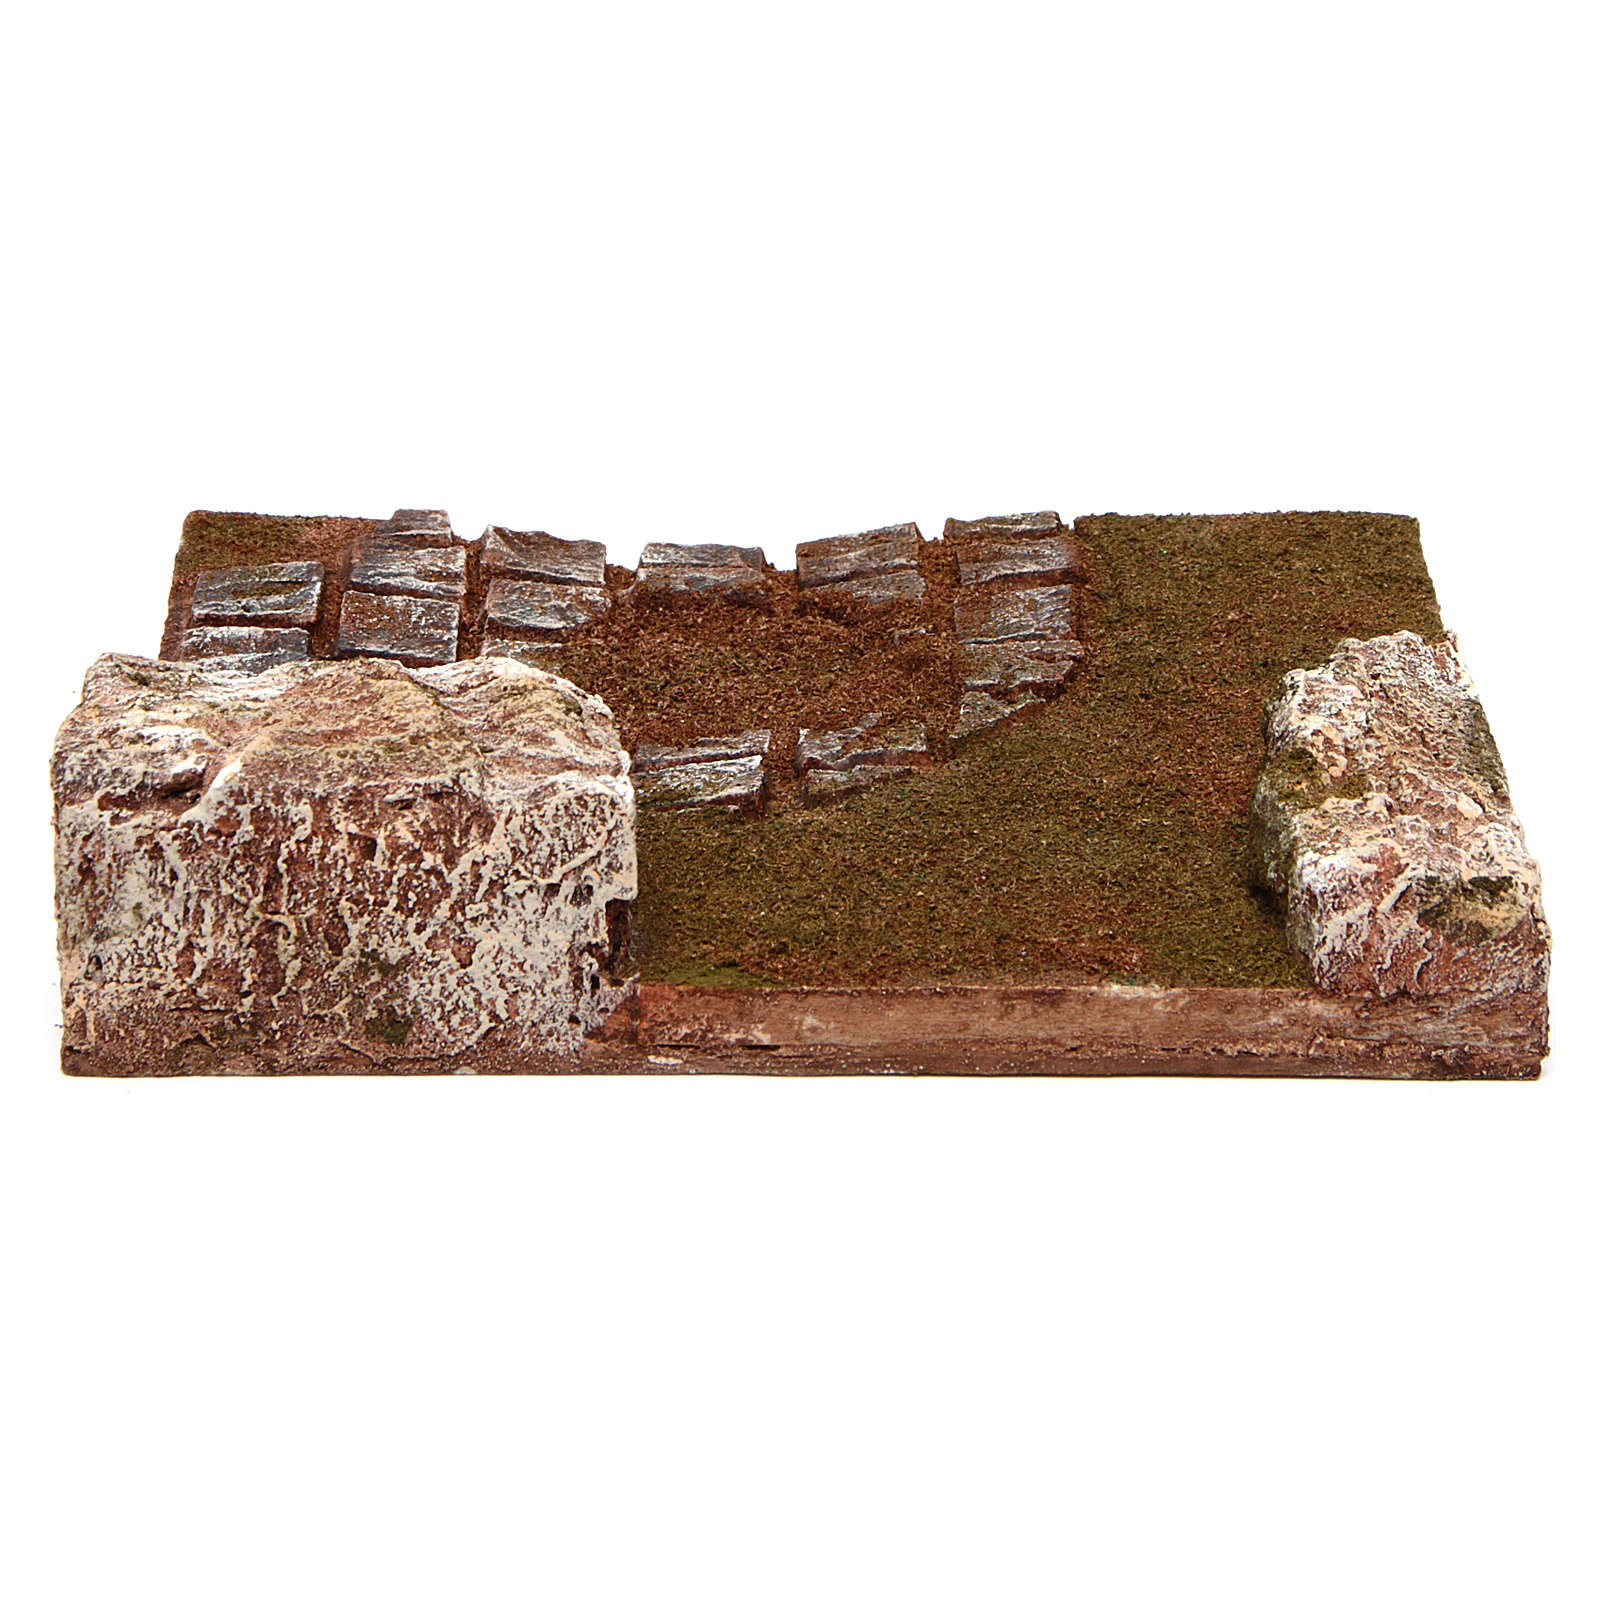 Joinable bended road part with rocks for Nativity Scene 12 cm 4